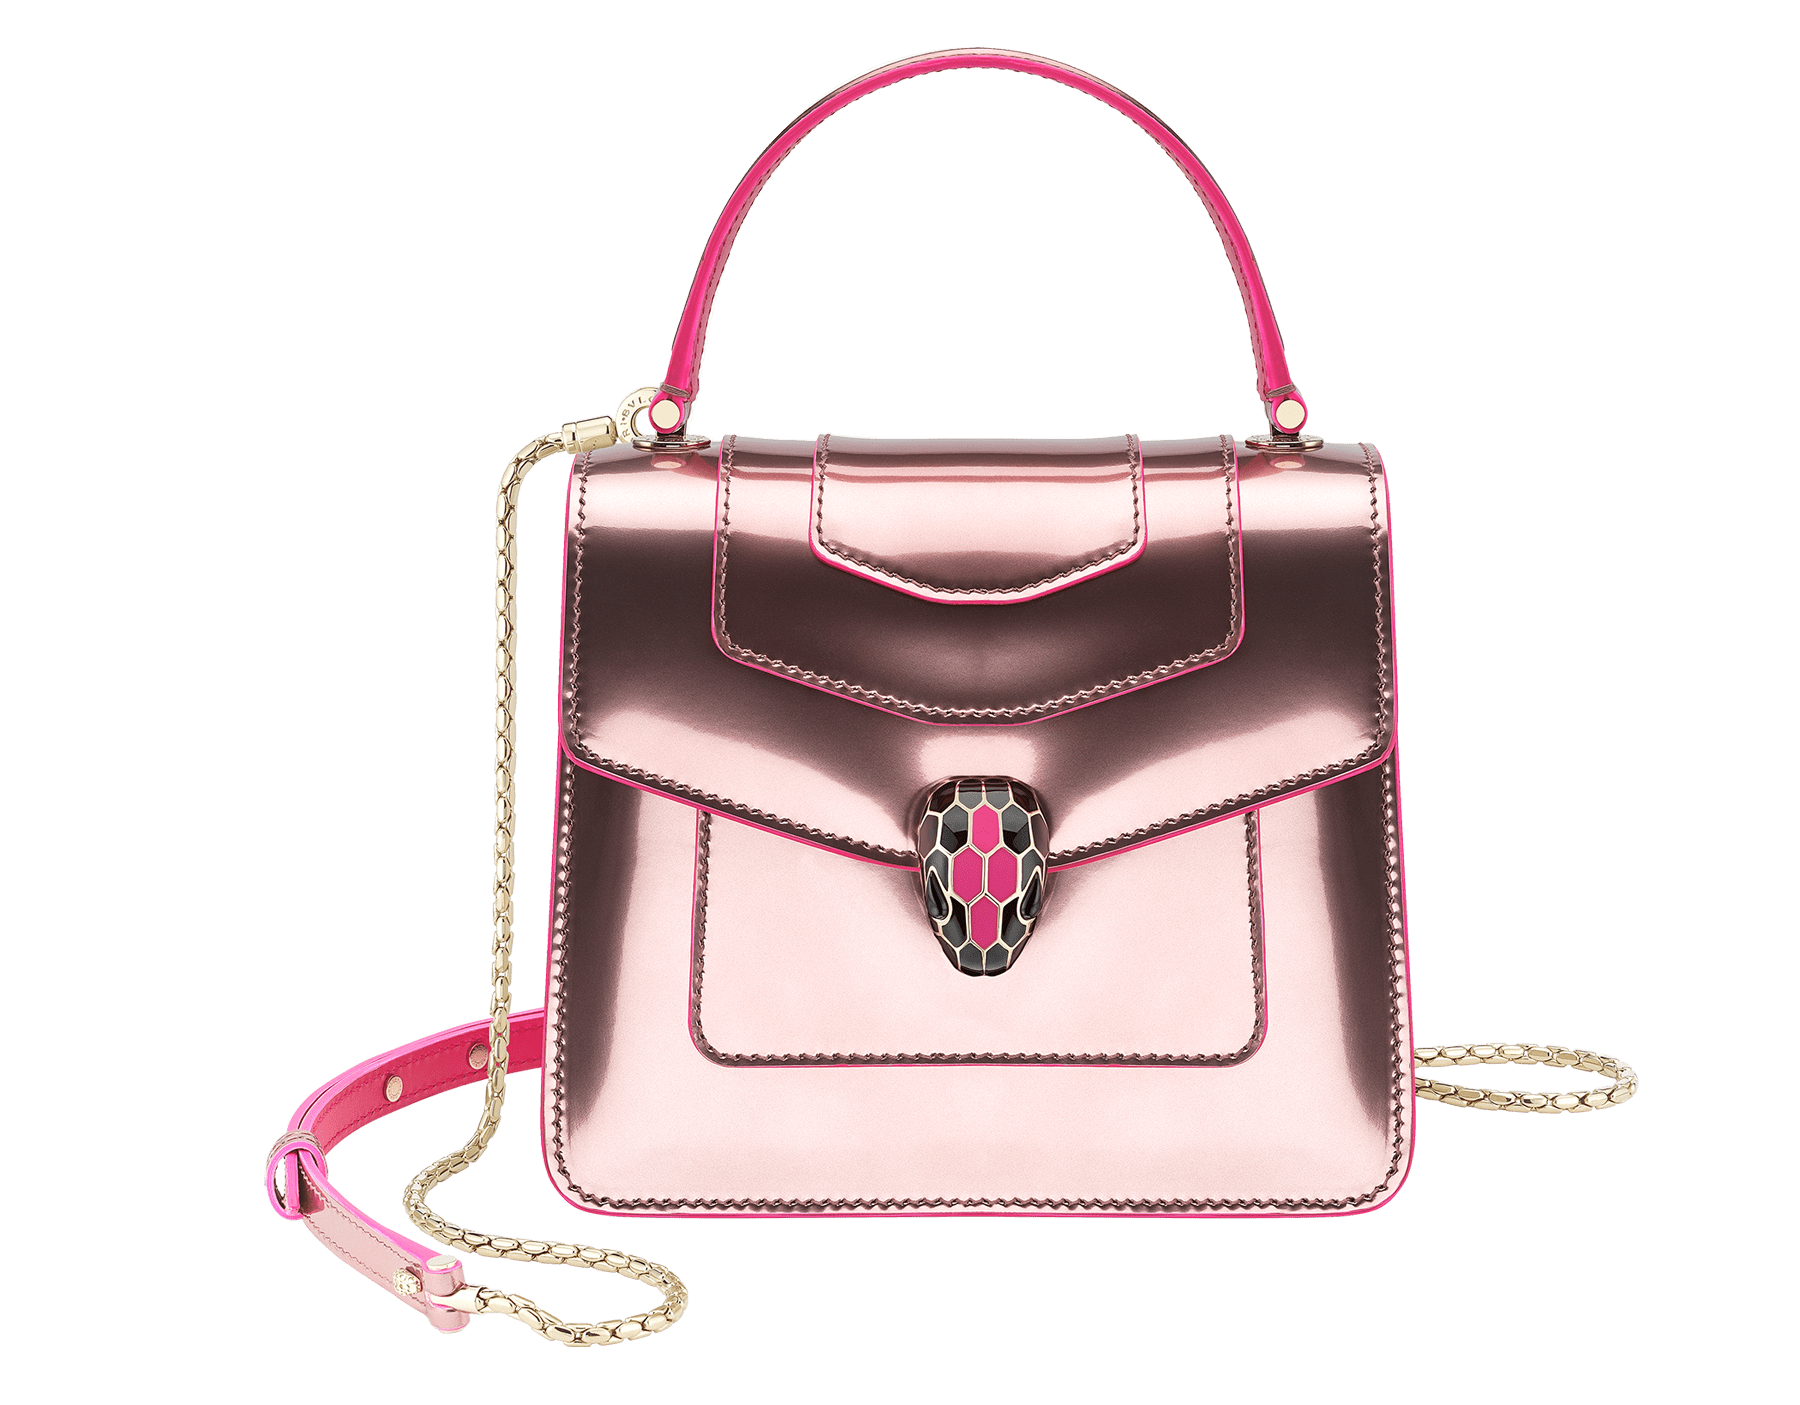 """Serpenti Forever "" crossbody bag with brushed metallic rose quartz calf leather body and brushed metallic rose quartz calf leather and flash amethyst calf leather sides. Iconic snake head closure in light gold plated brass enriched with black and flash amethyst enamel and black onyx eyes. 289486 image 1"